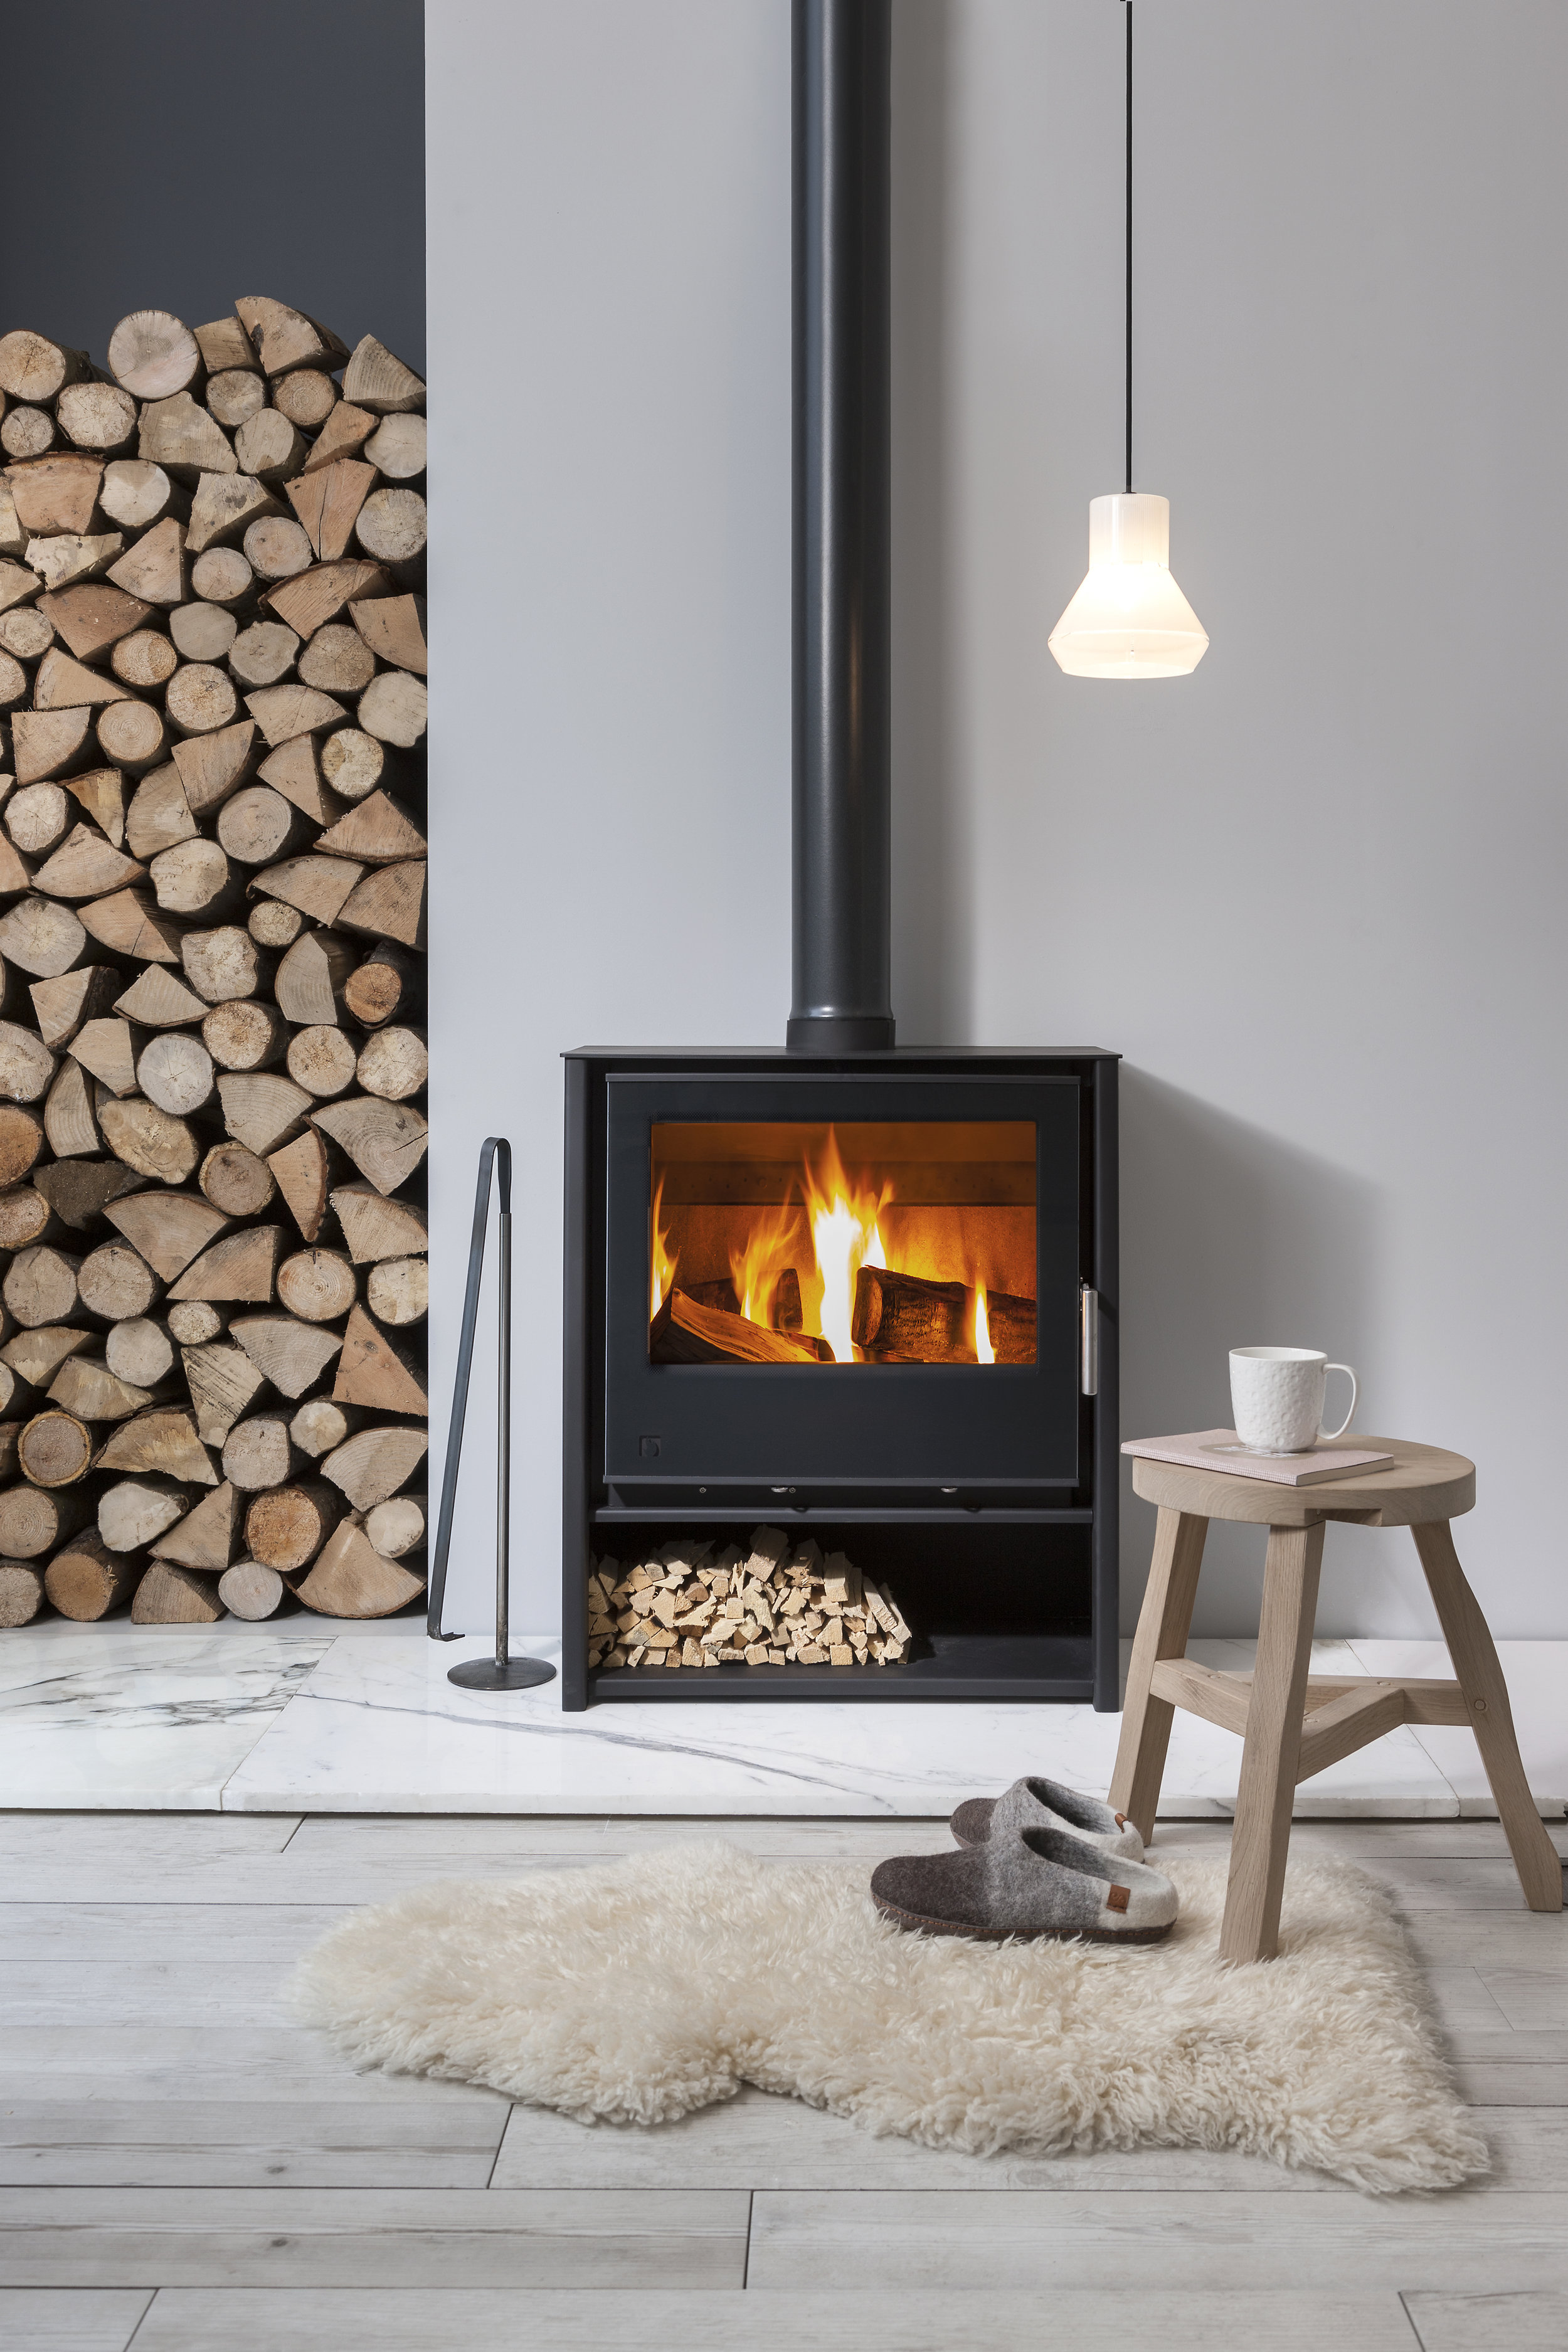 The  i600 slimline freestanding stove